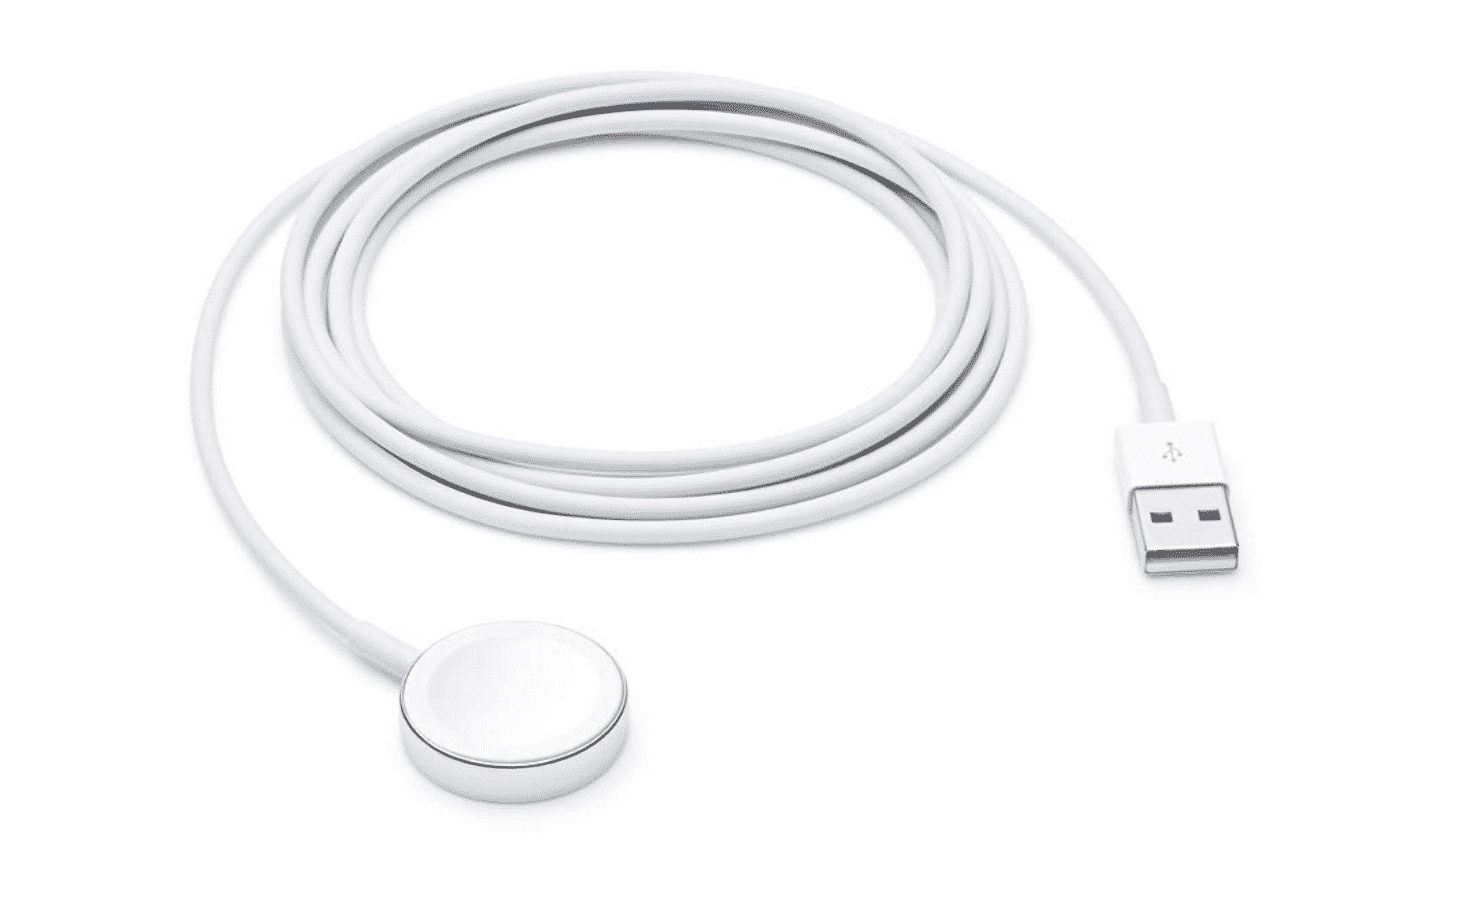 Official Charging Cable for Apple Watch Now 50% Off